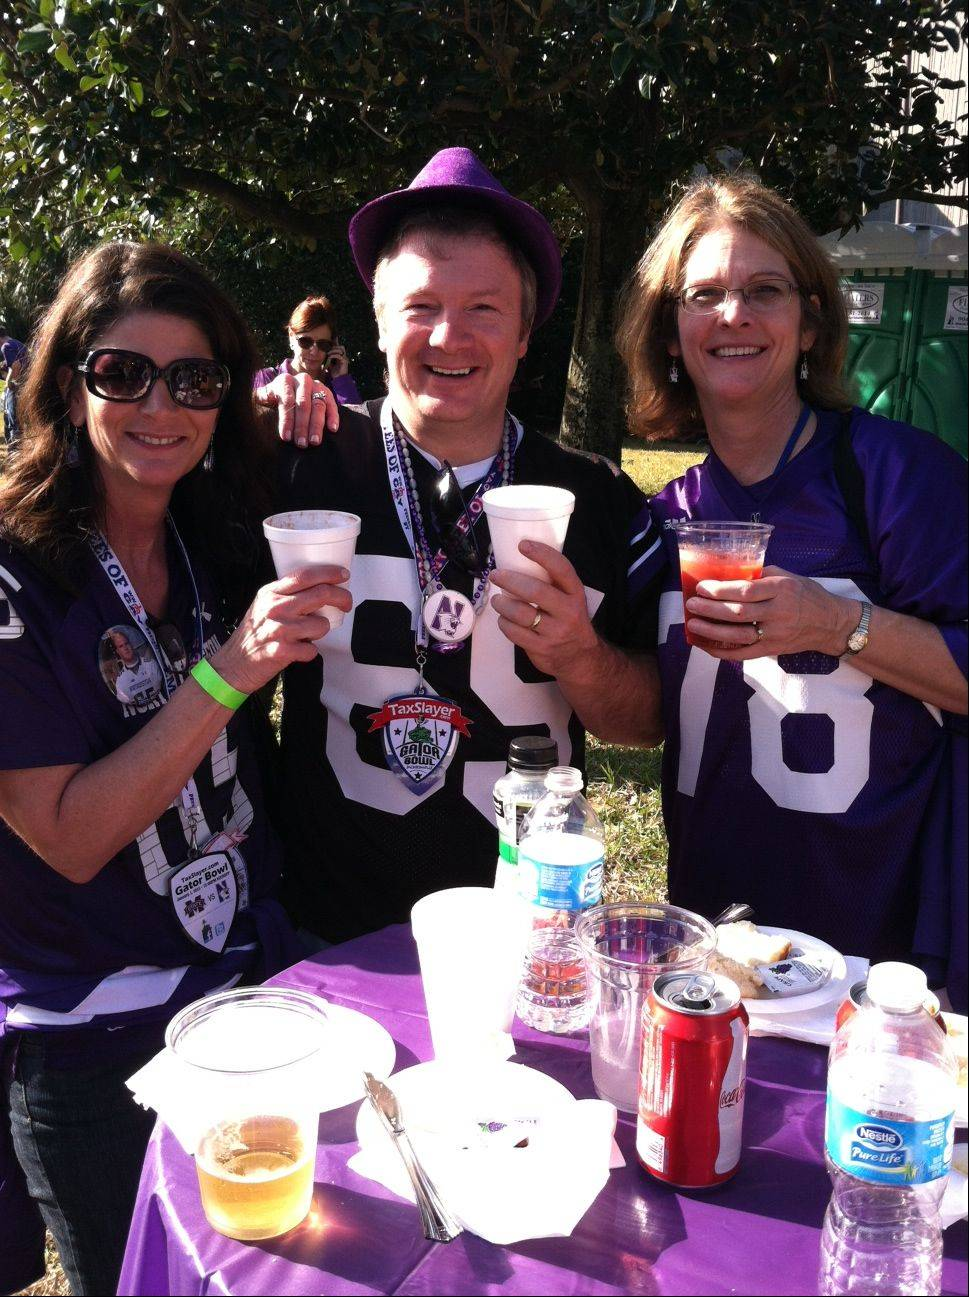 Pre-game tailgate with Baker, Mary Ellen and Clare Jorgensen.